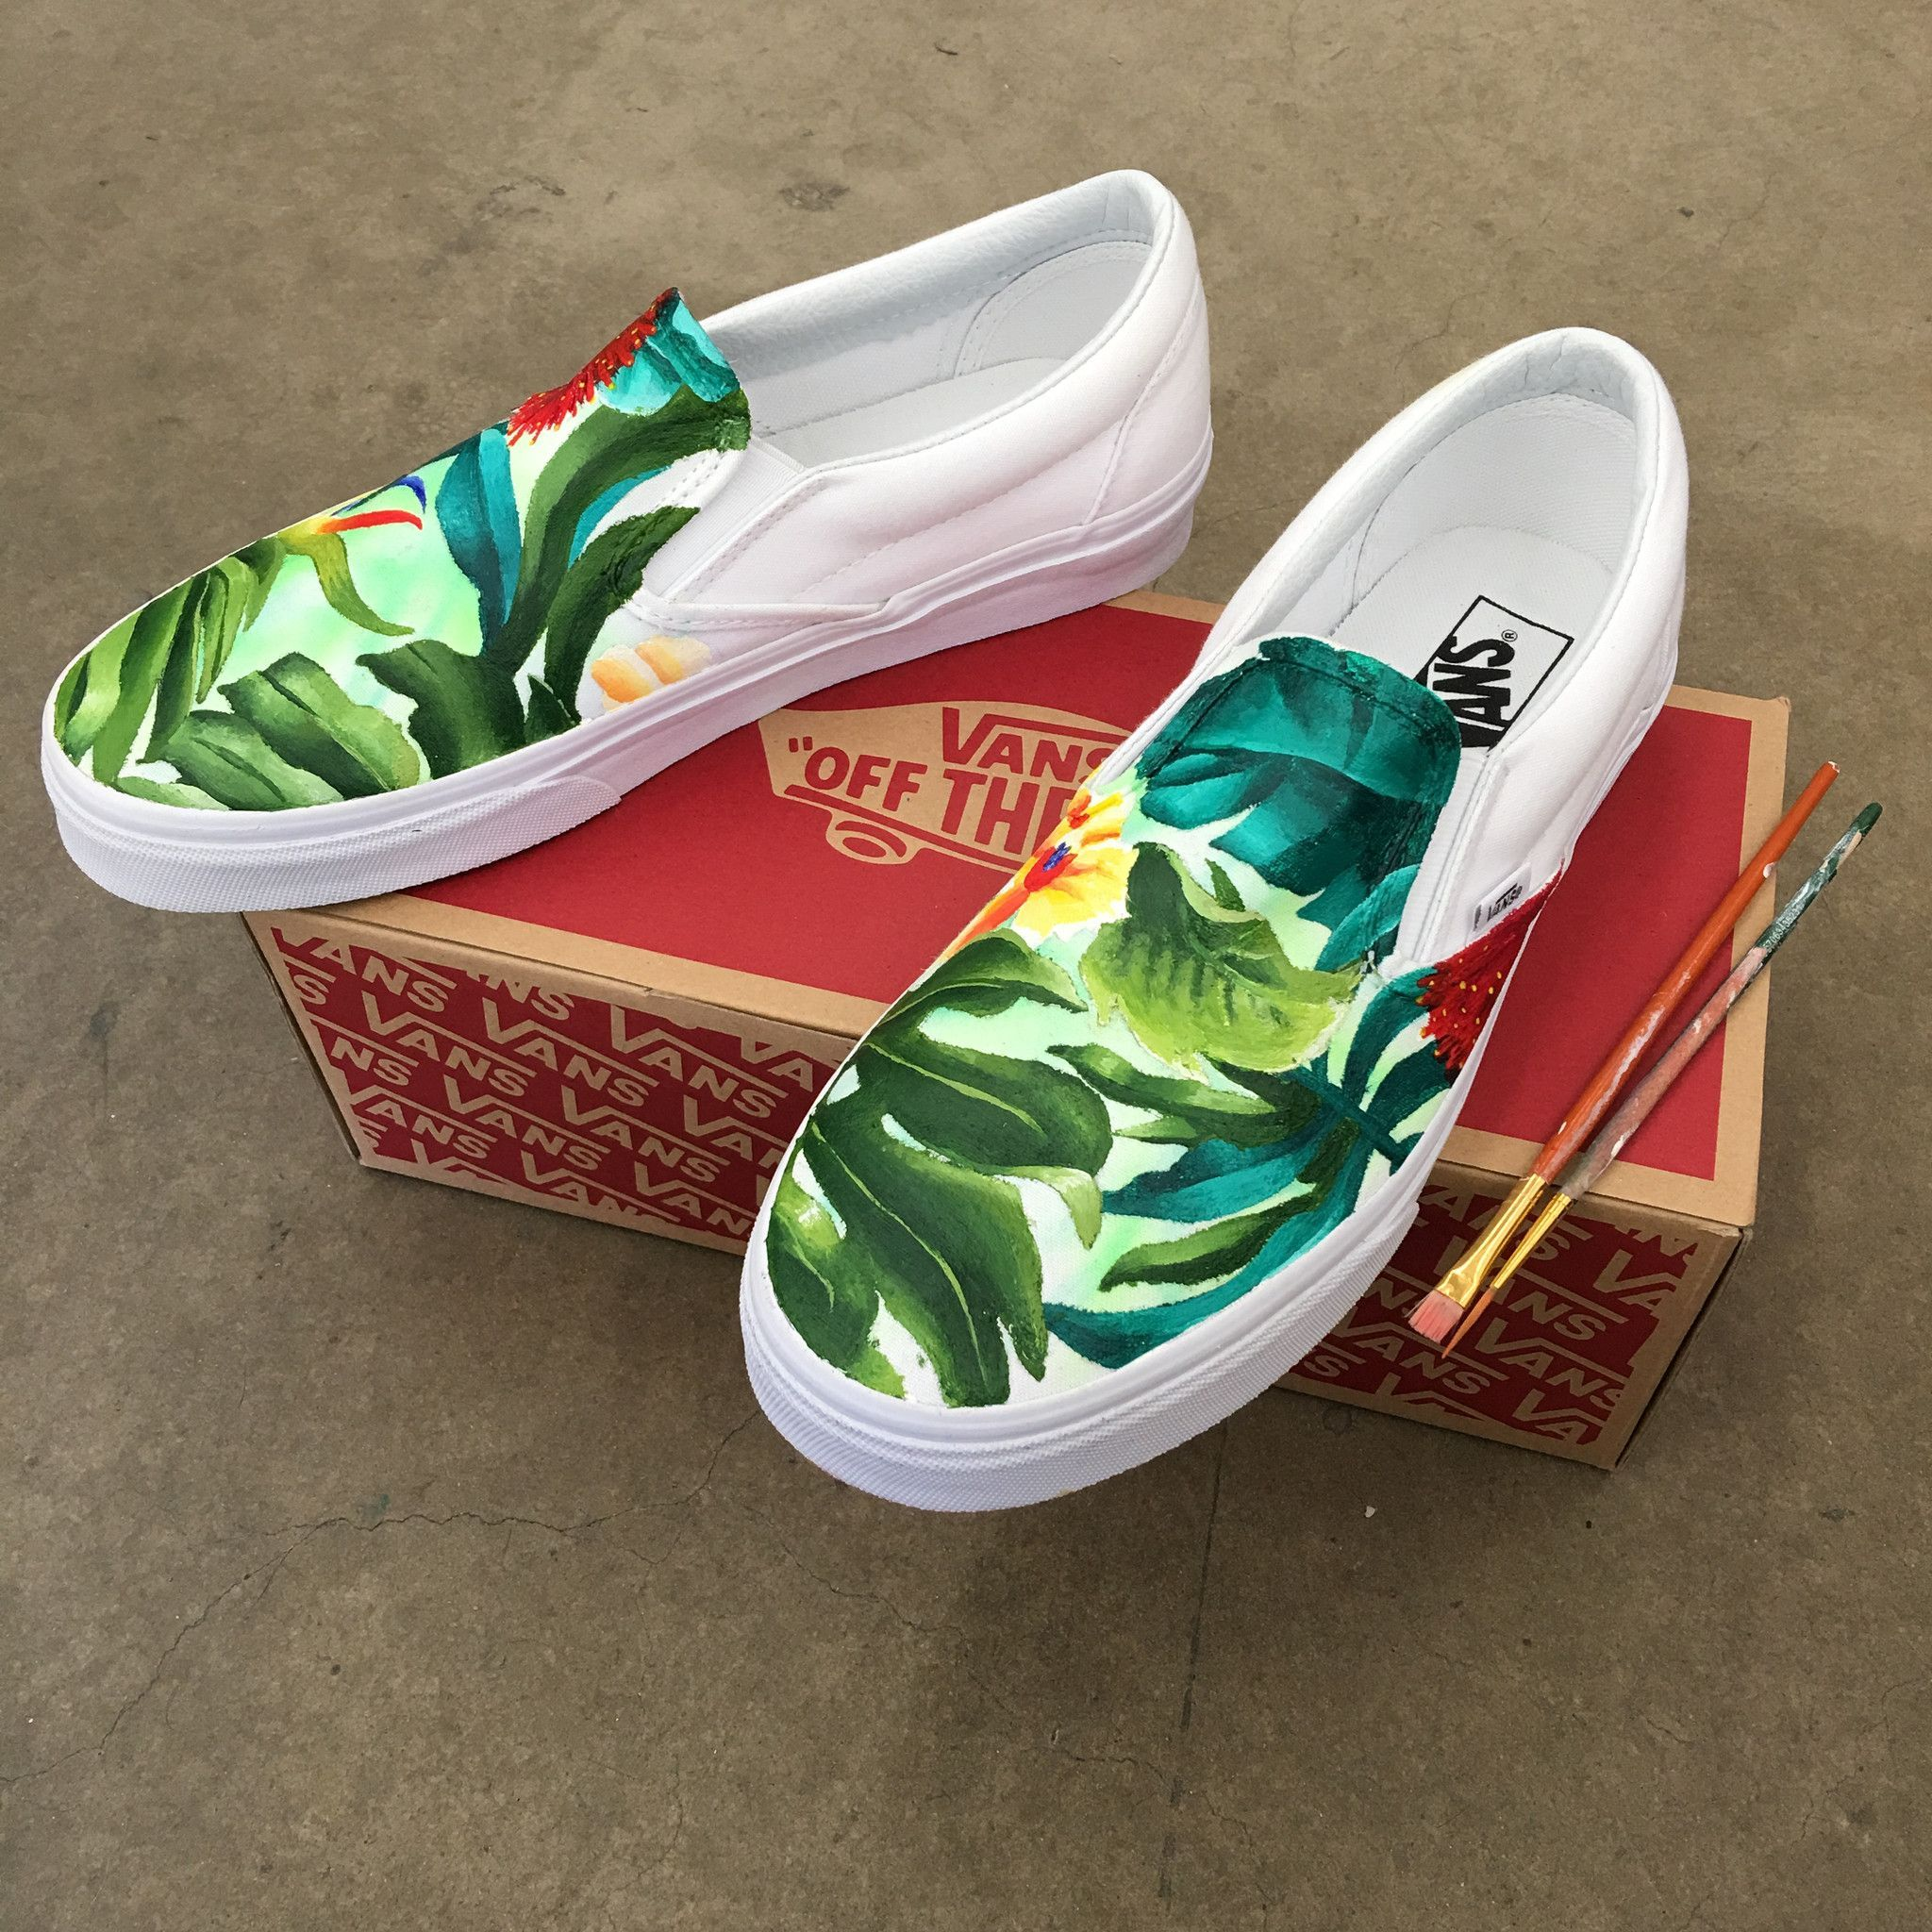 bd56a0cd49fd43 These custom hand painted Vans have been painted with a tropical floral  pattern all over. These custom shoes started out as true white slip on vans.